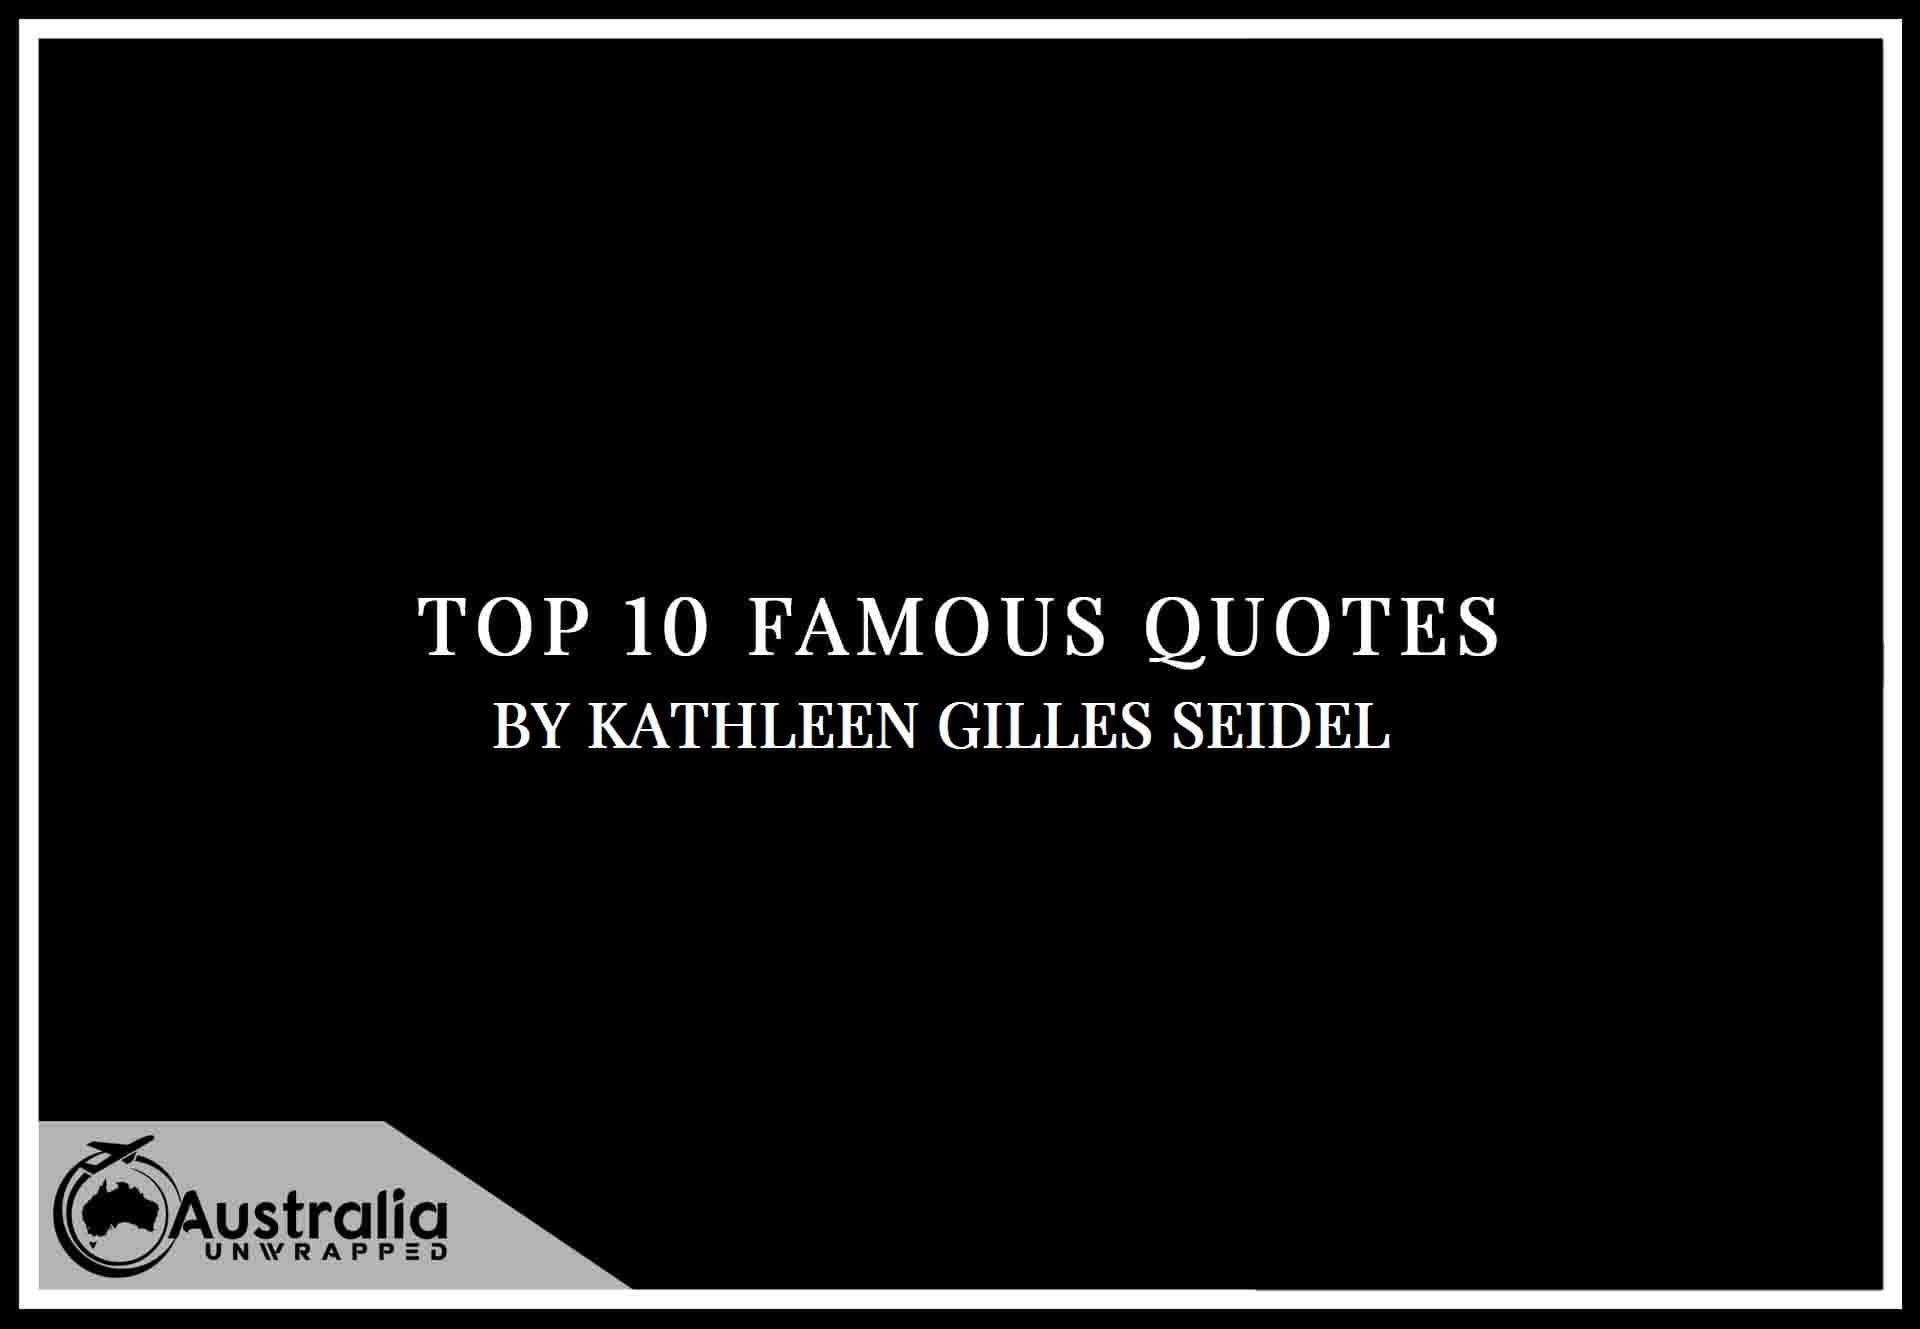 Kathleen Gilles Seidel's Top 10 Popular and Famous Quotes